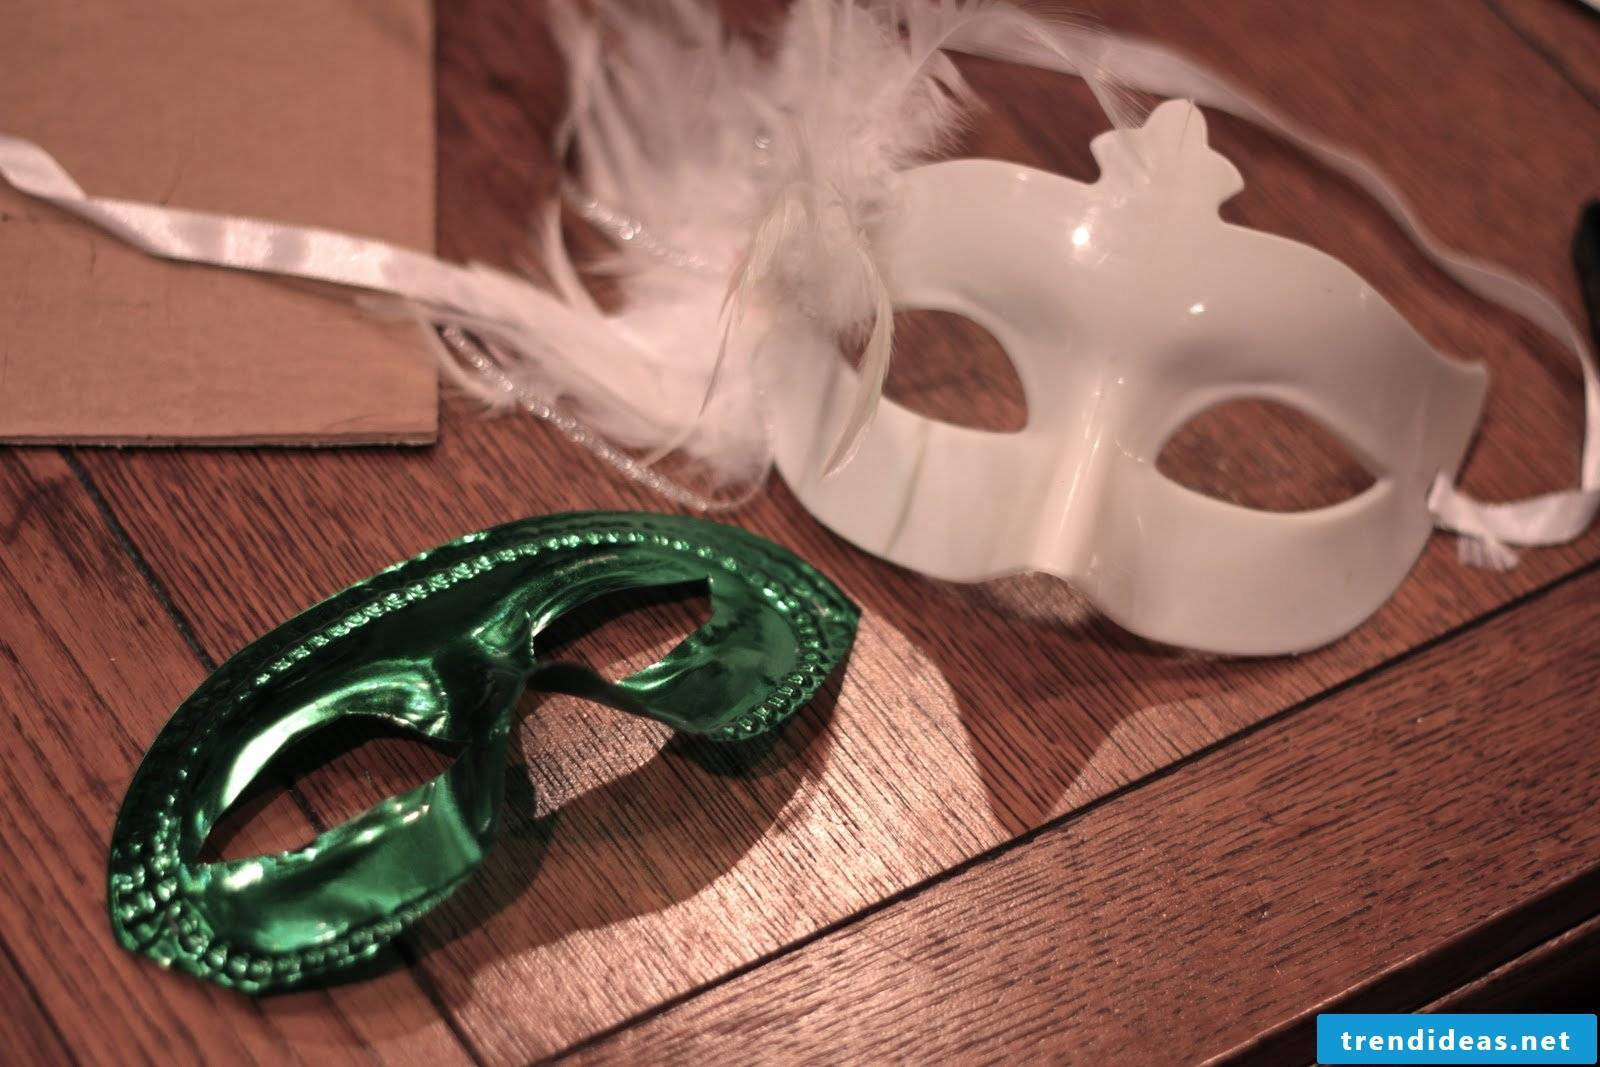 Masks themselves make every occasion